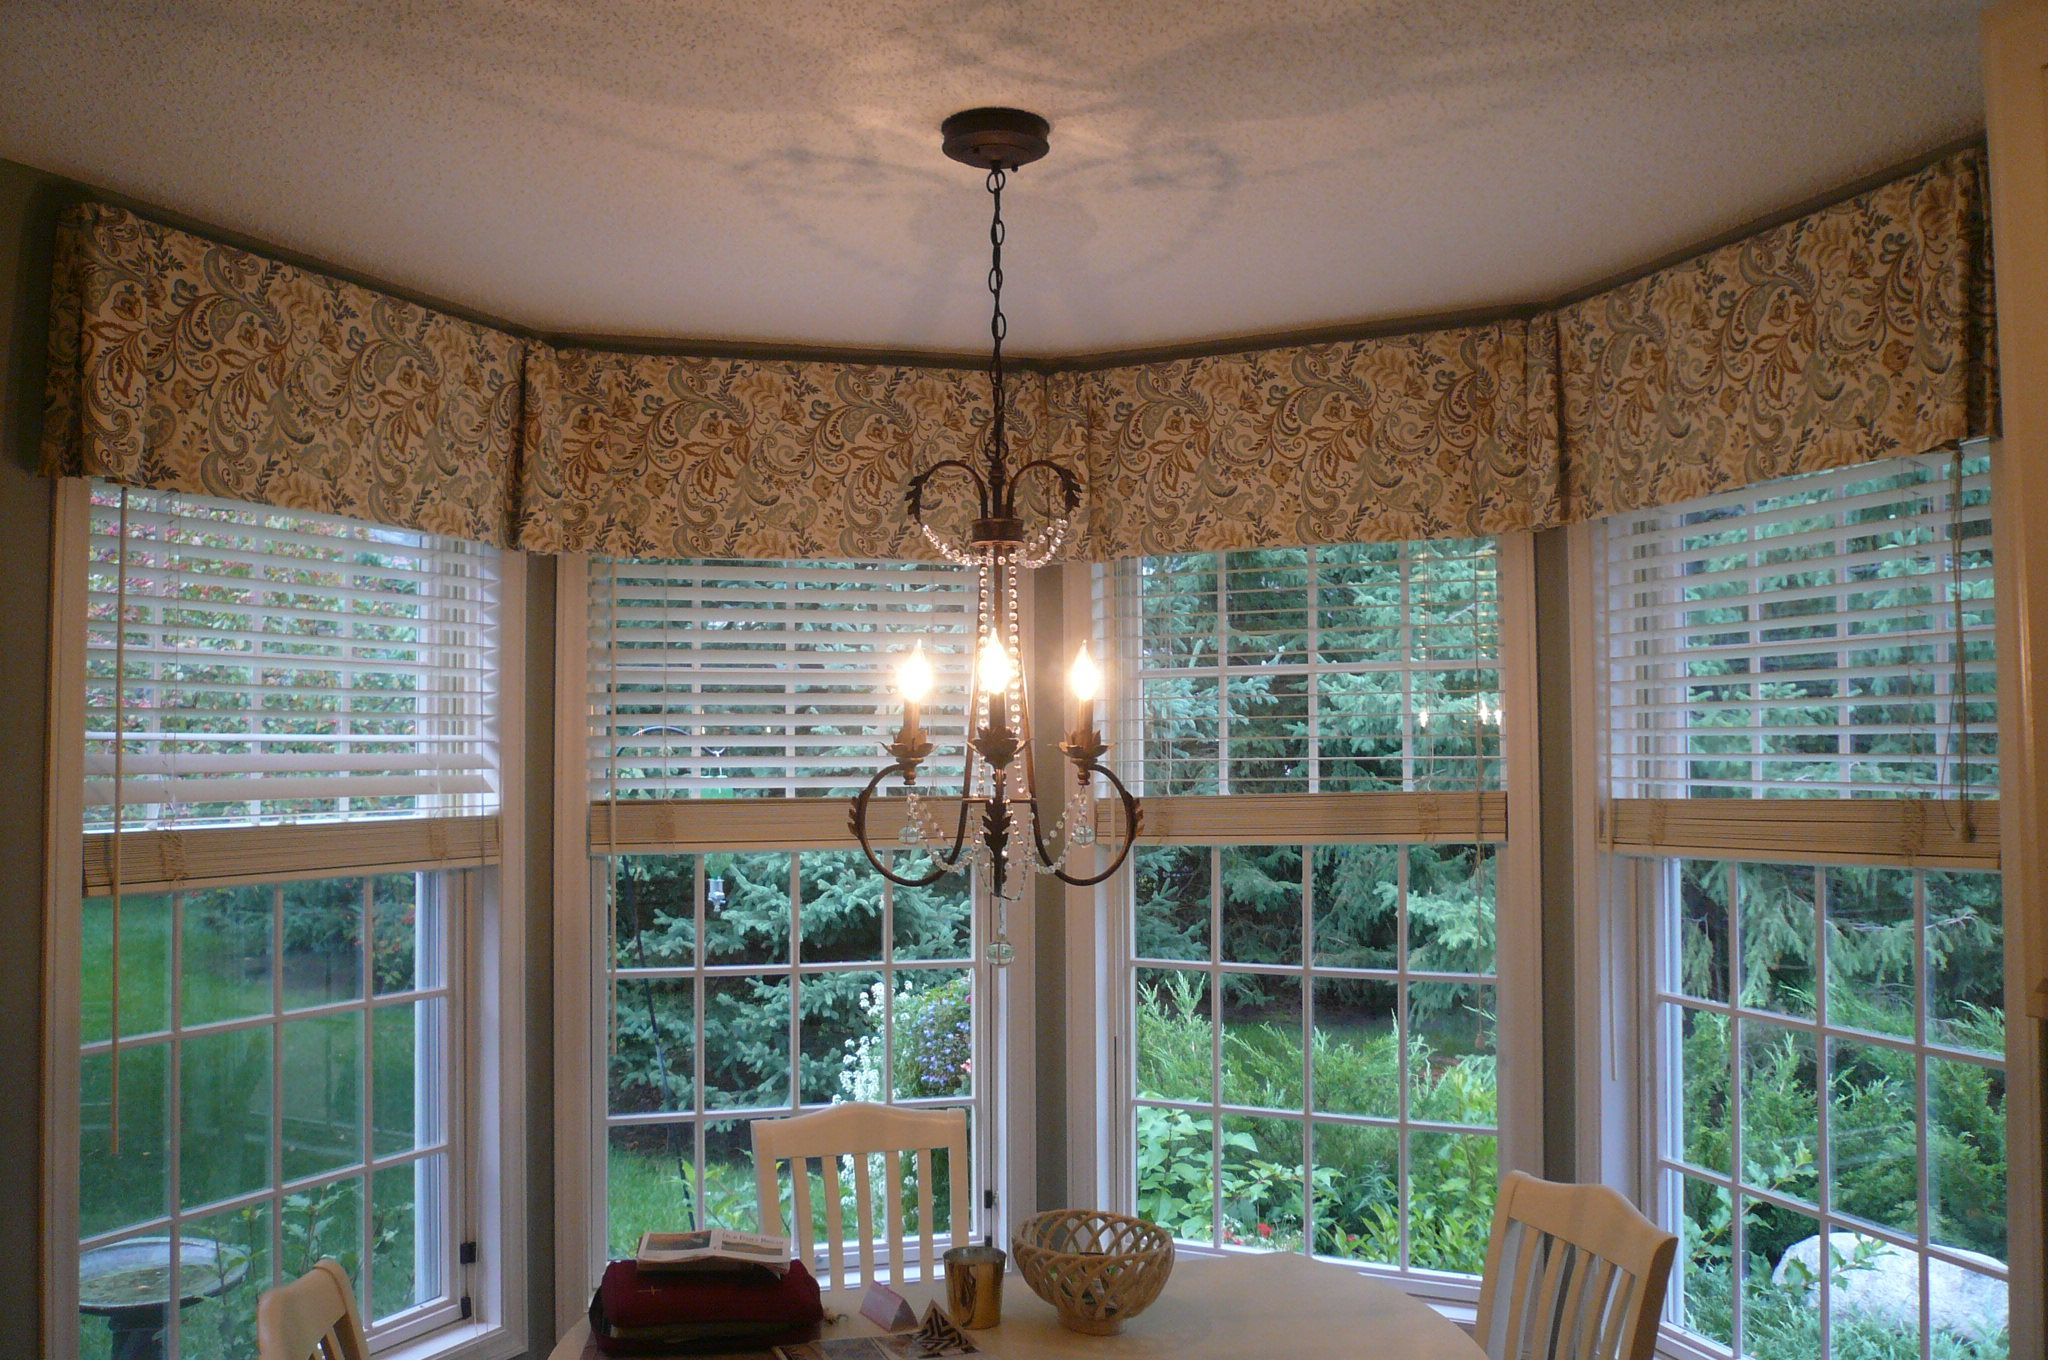 Bay Window Valance Box Pleated Valance To Tie 4 Windows